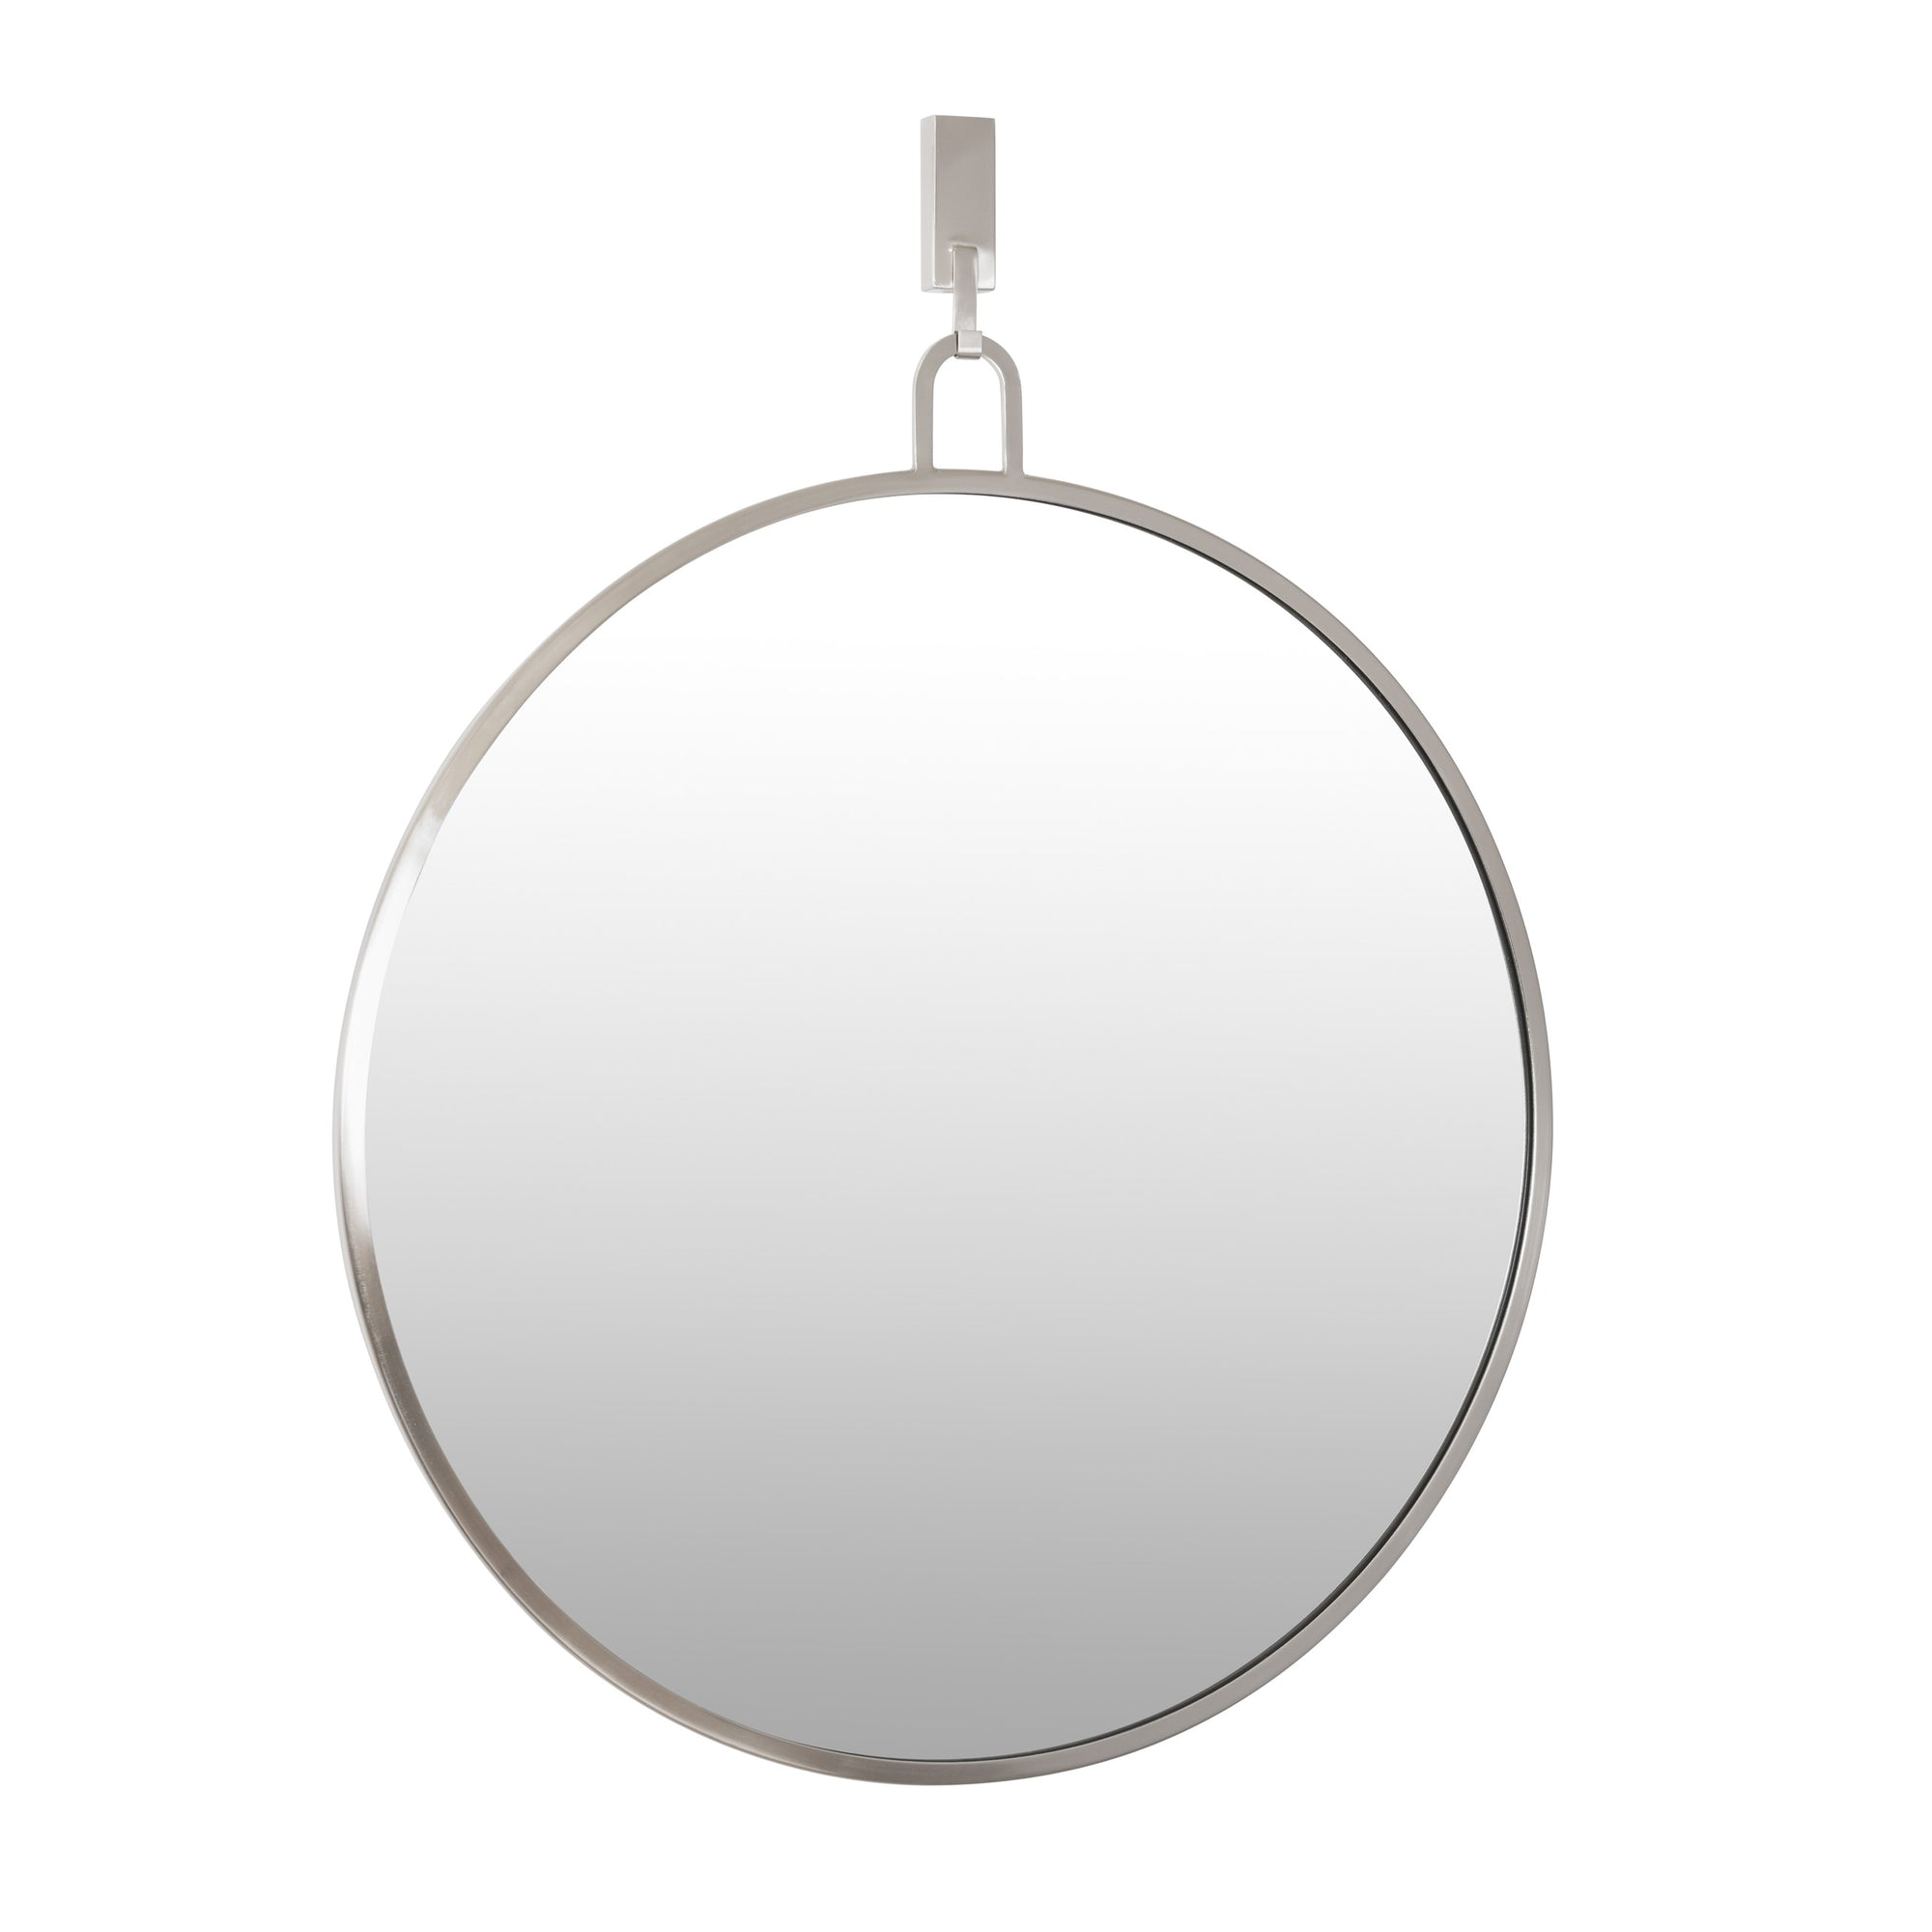 Stopwatch 30-in Round Accent Mirror - Brushed Nickel - 407A01BN